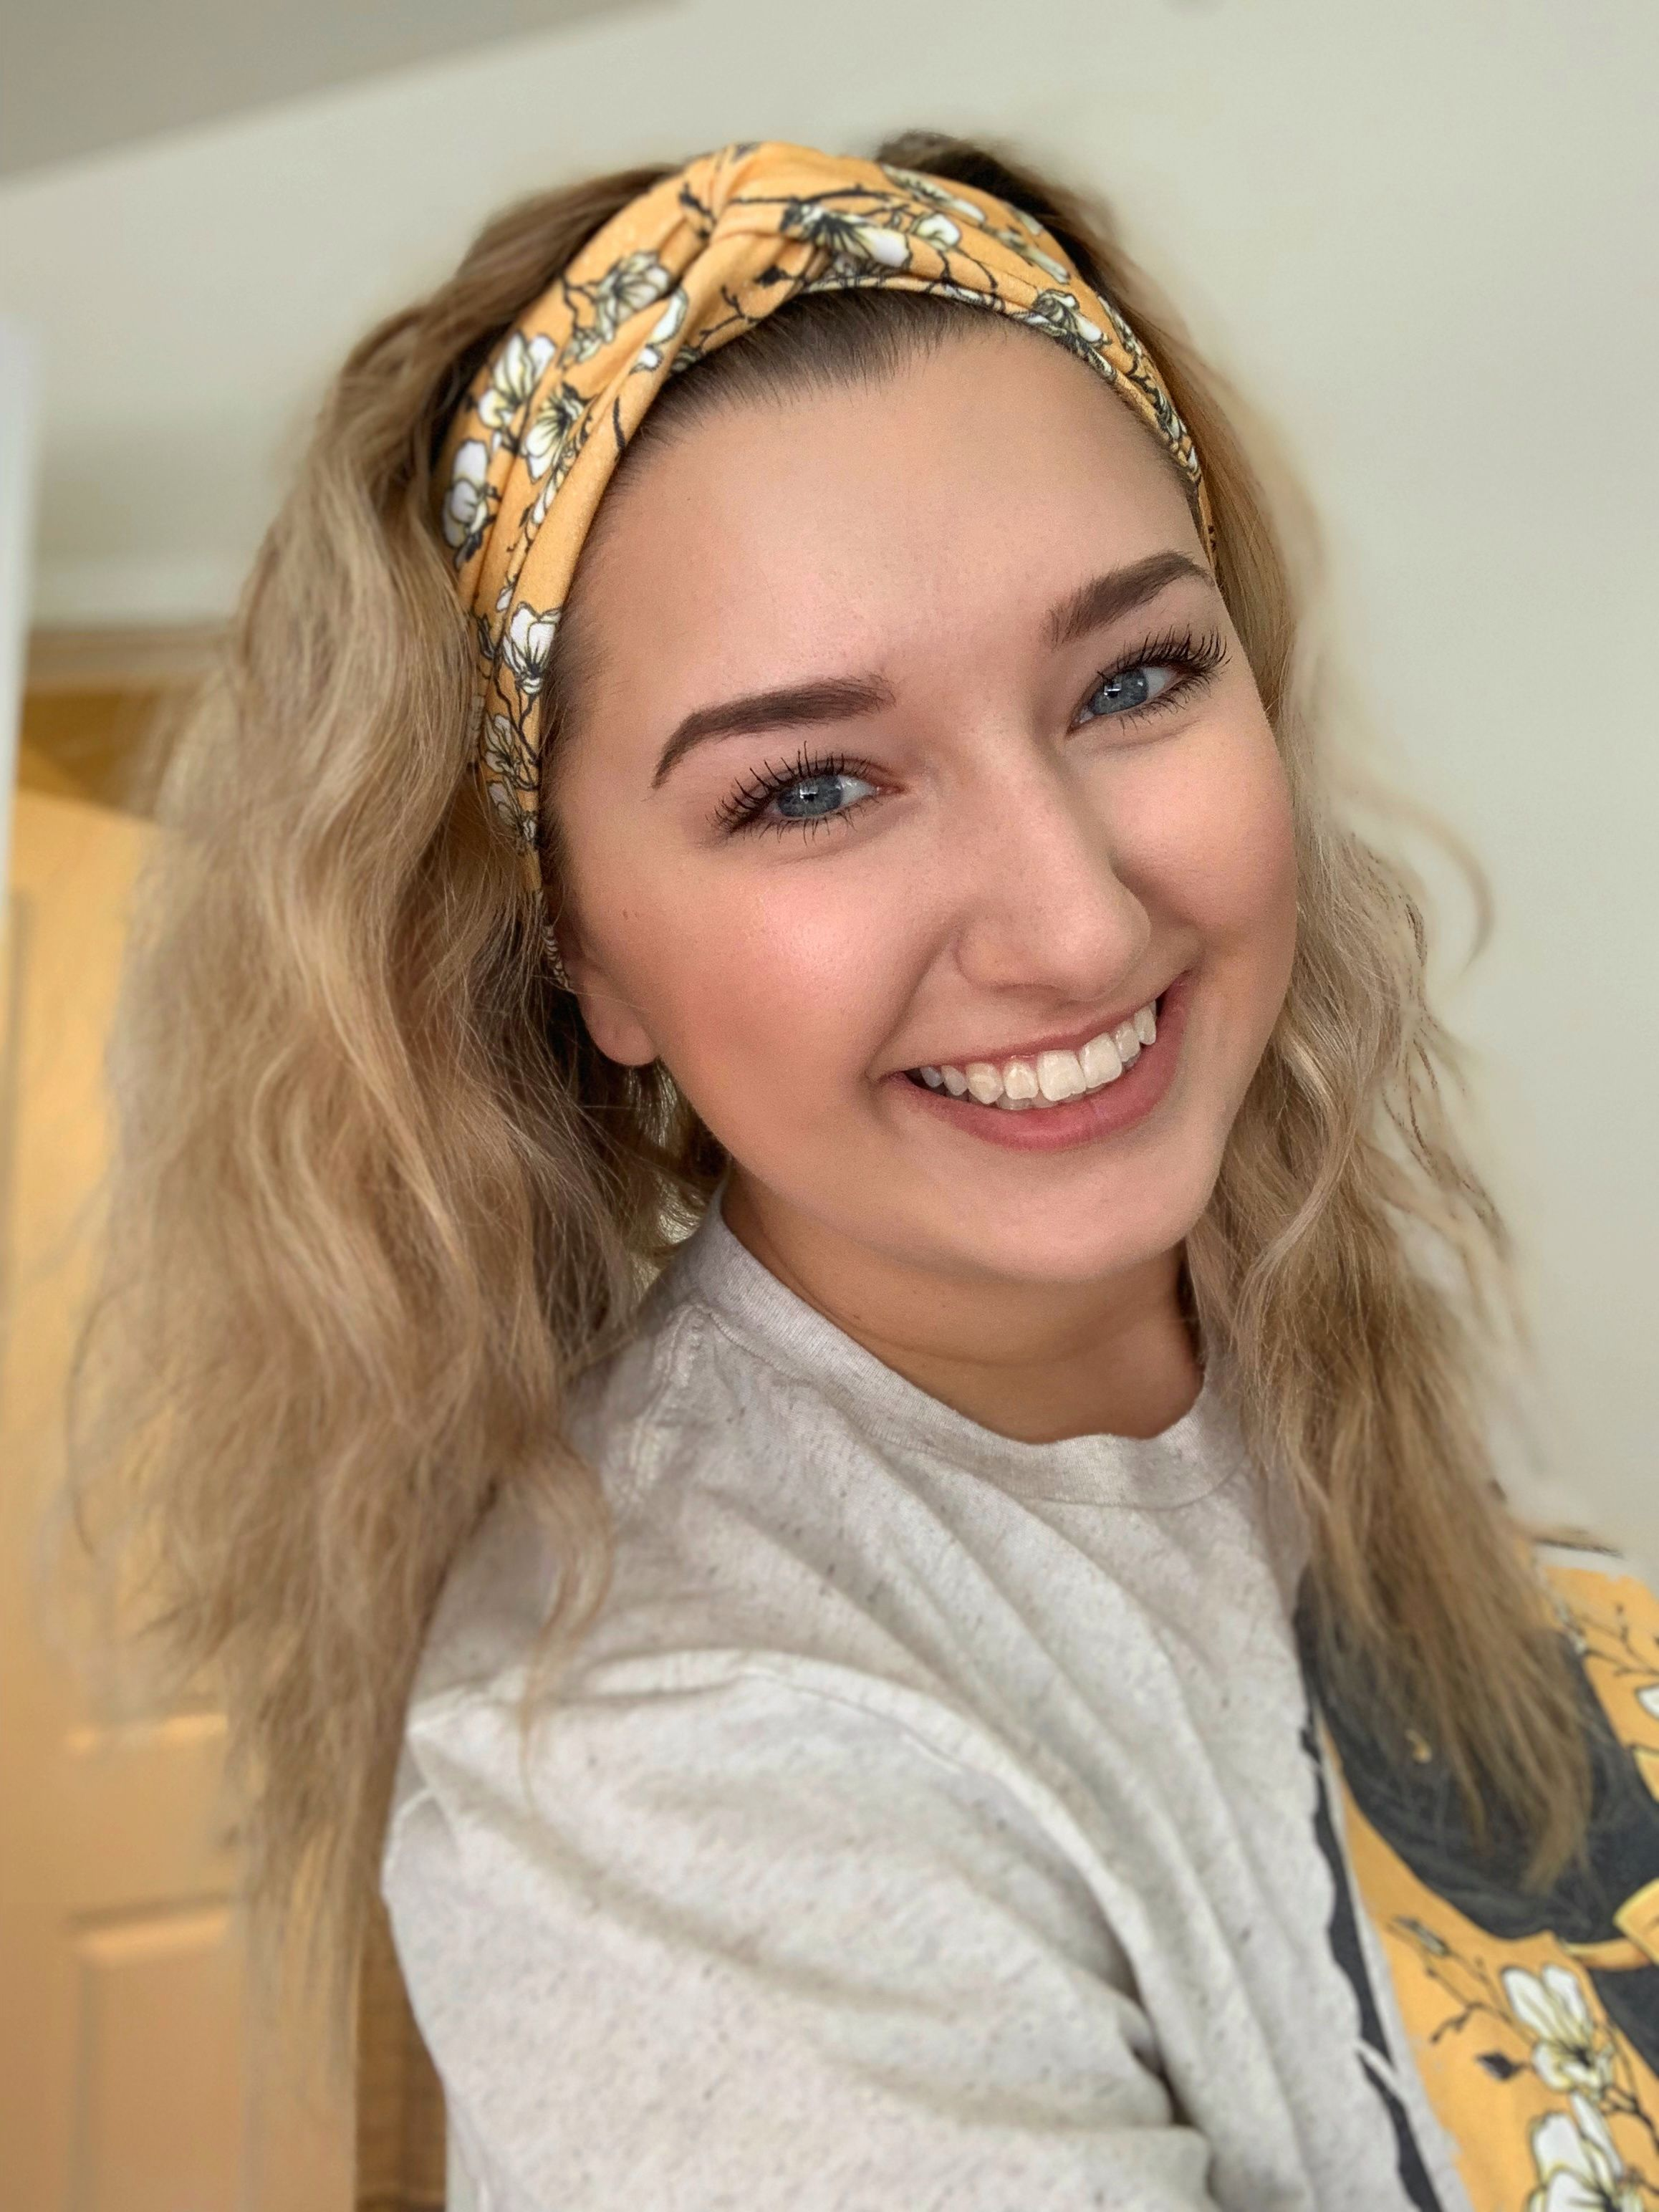 c72c4f7fa23fddf091d110260828c5ee - How To Get A Headband To Stay In Place